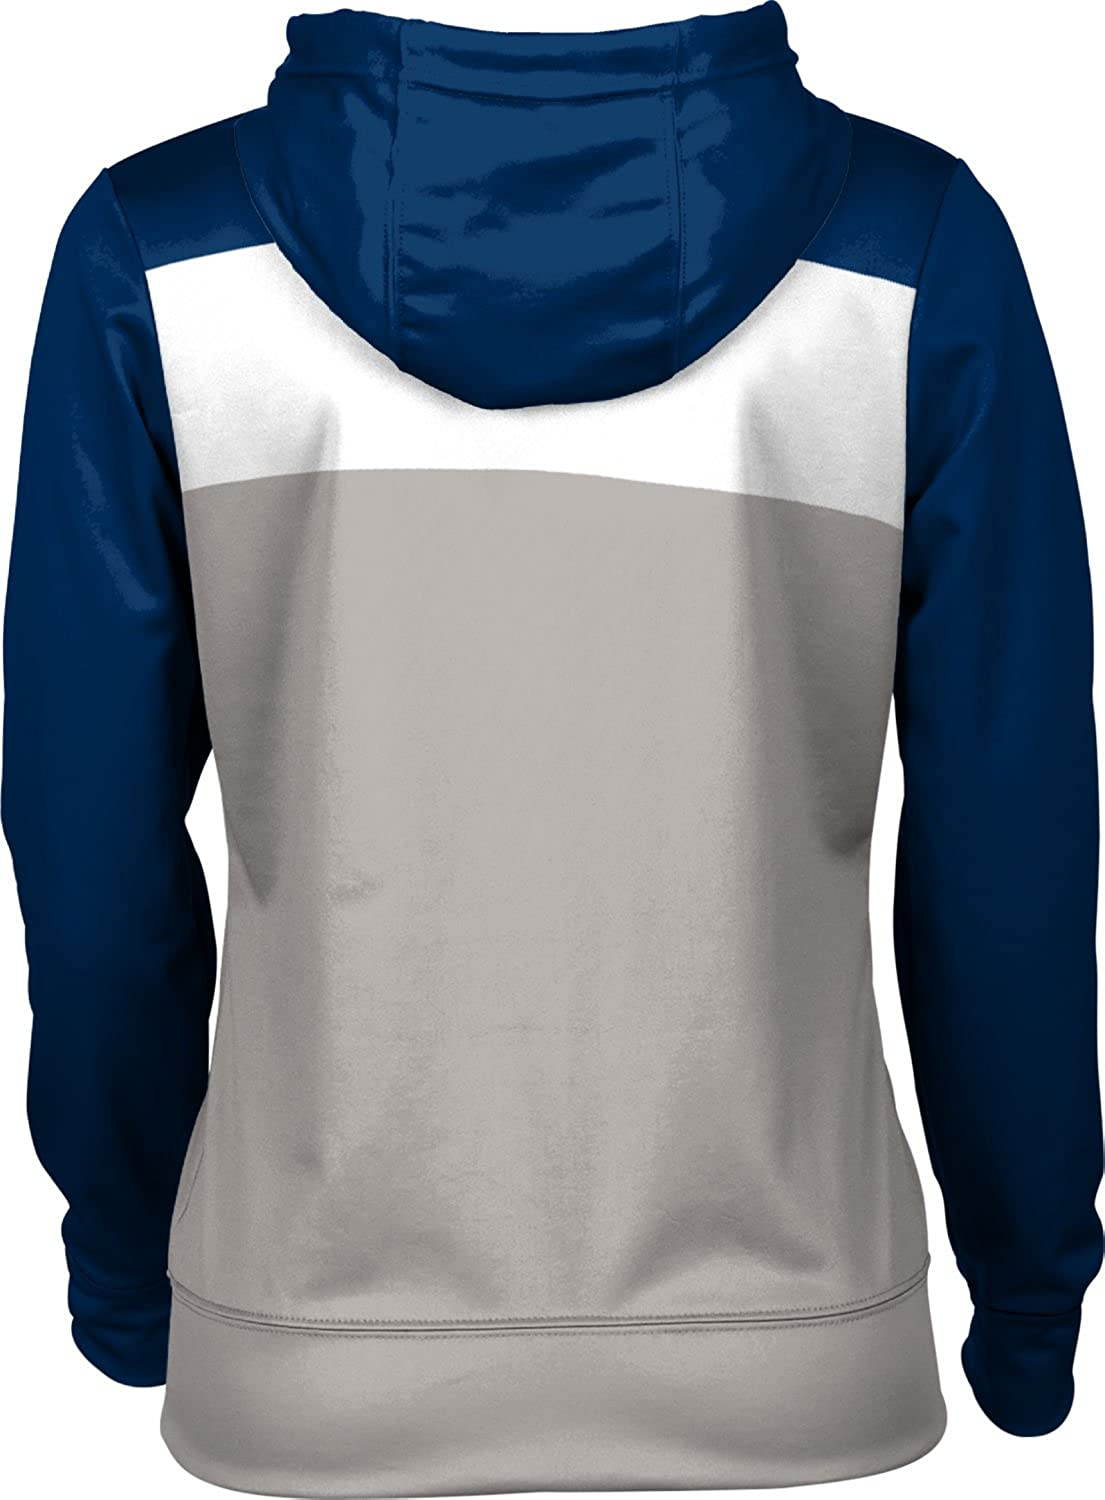 Washburn University Girls Zipper Hoodie Prime School Spirit Sweatshirt